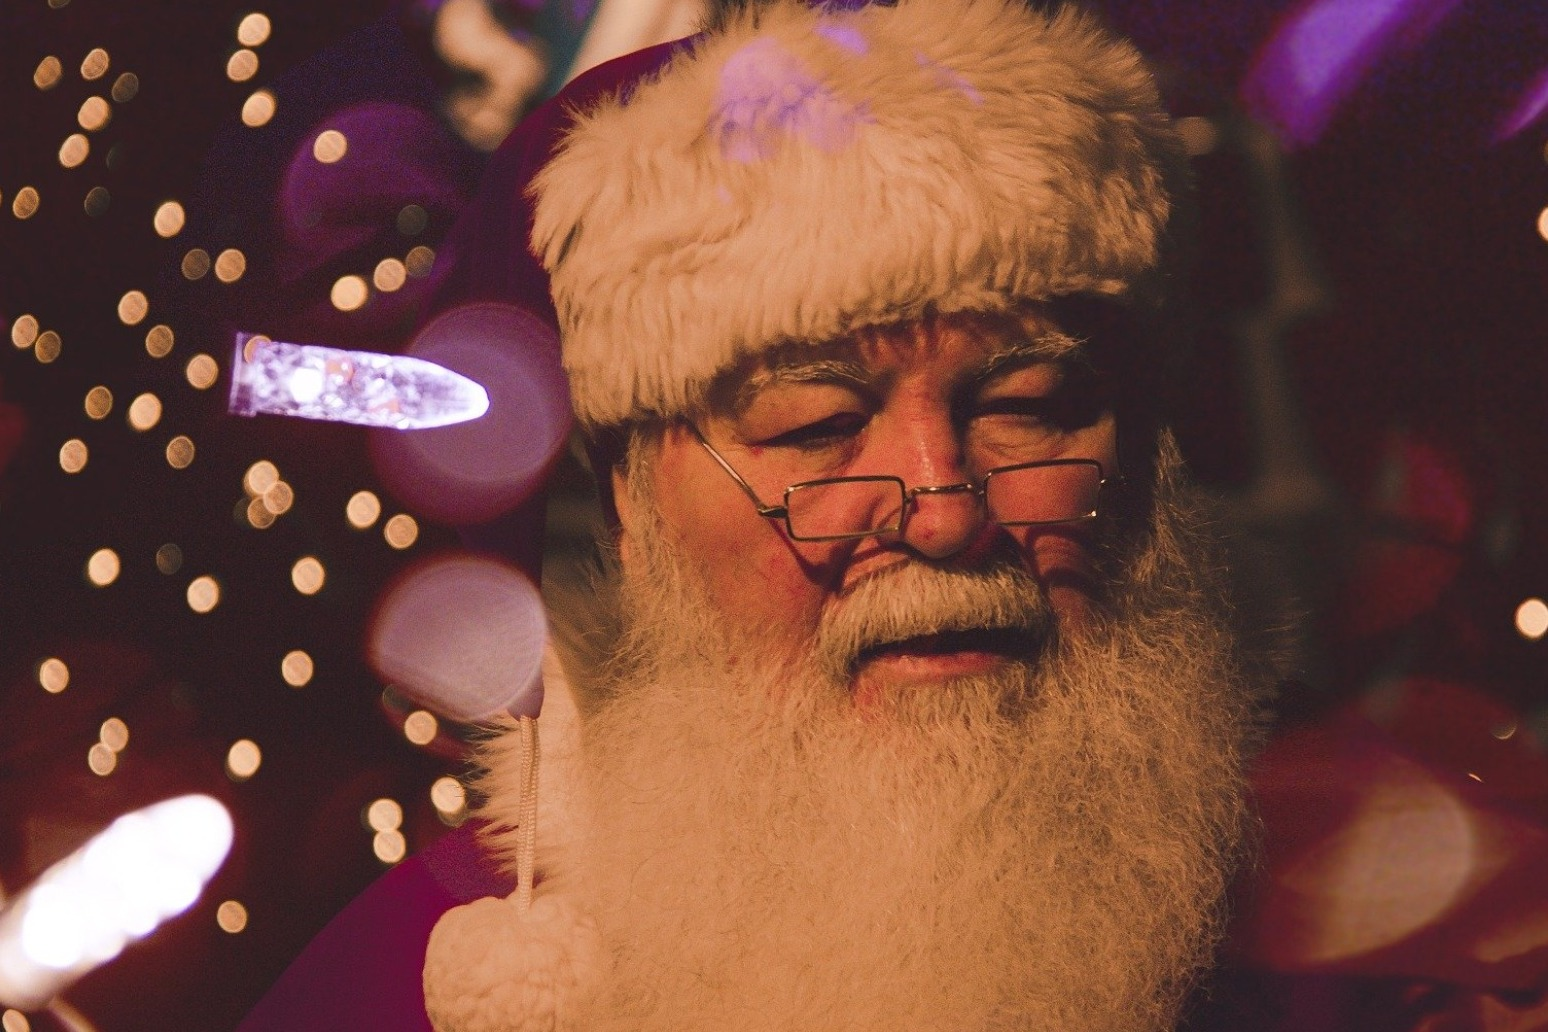 SANTA SPOTTING: PARENTS TURN TO SMART TECH TO PROVE FATHER CHRISTMAS IS REAL